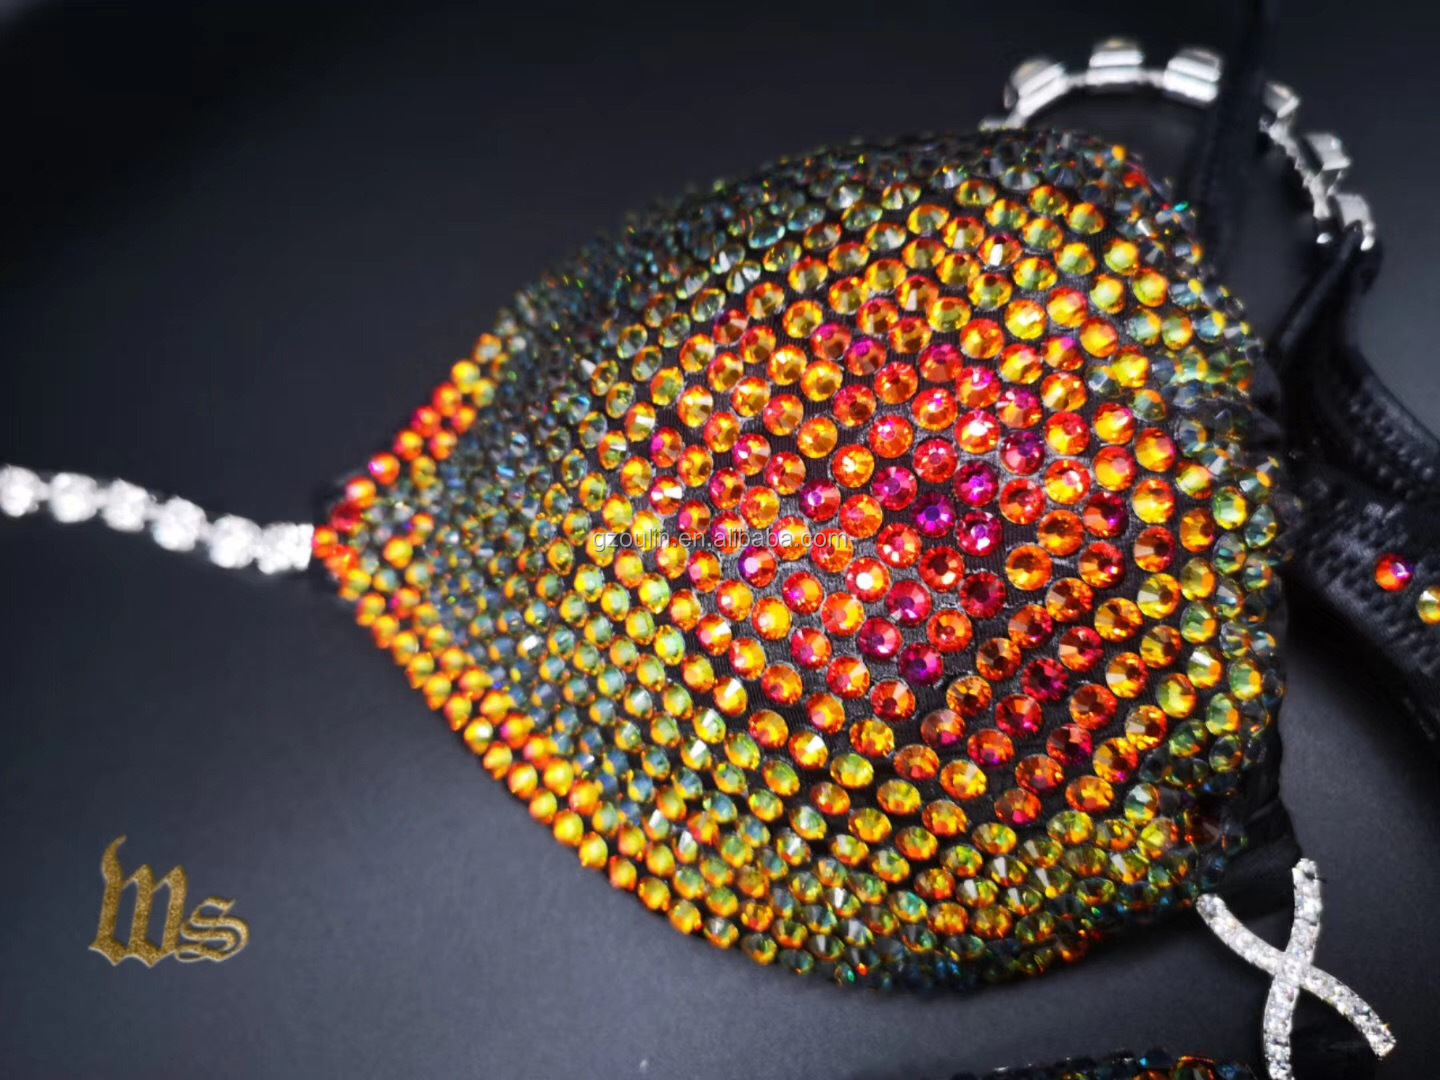 Hot fix rhinestones designs using on bra can be customized different size bra accessory rhinestones types